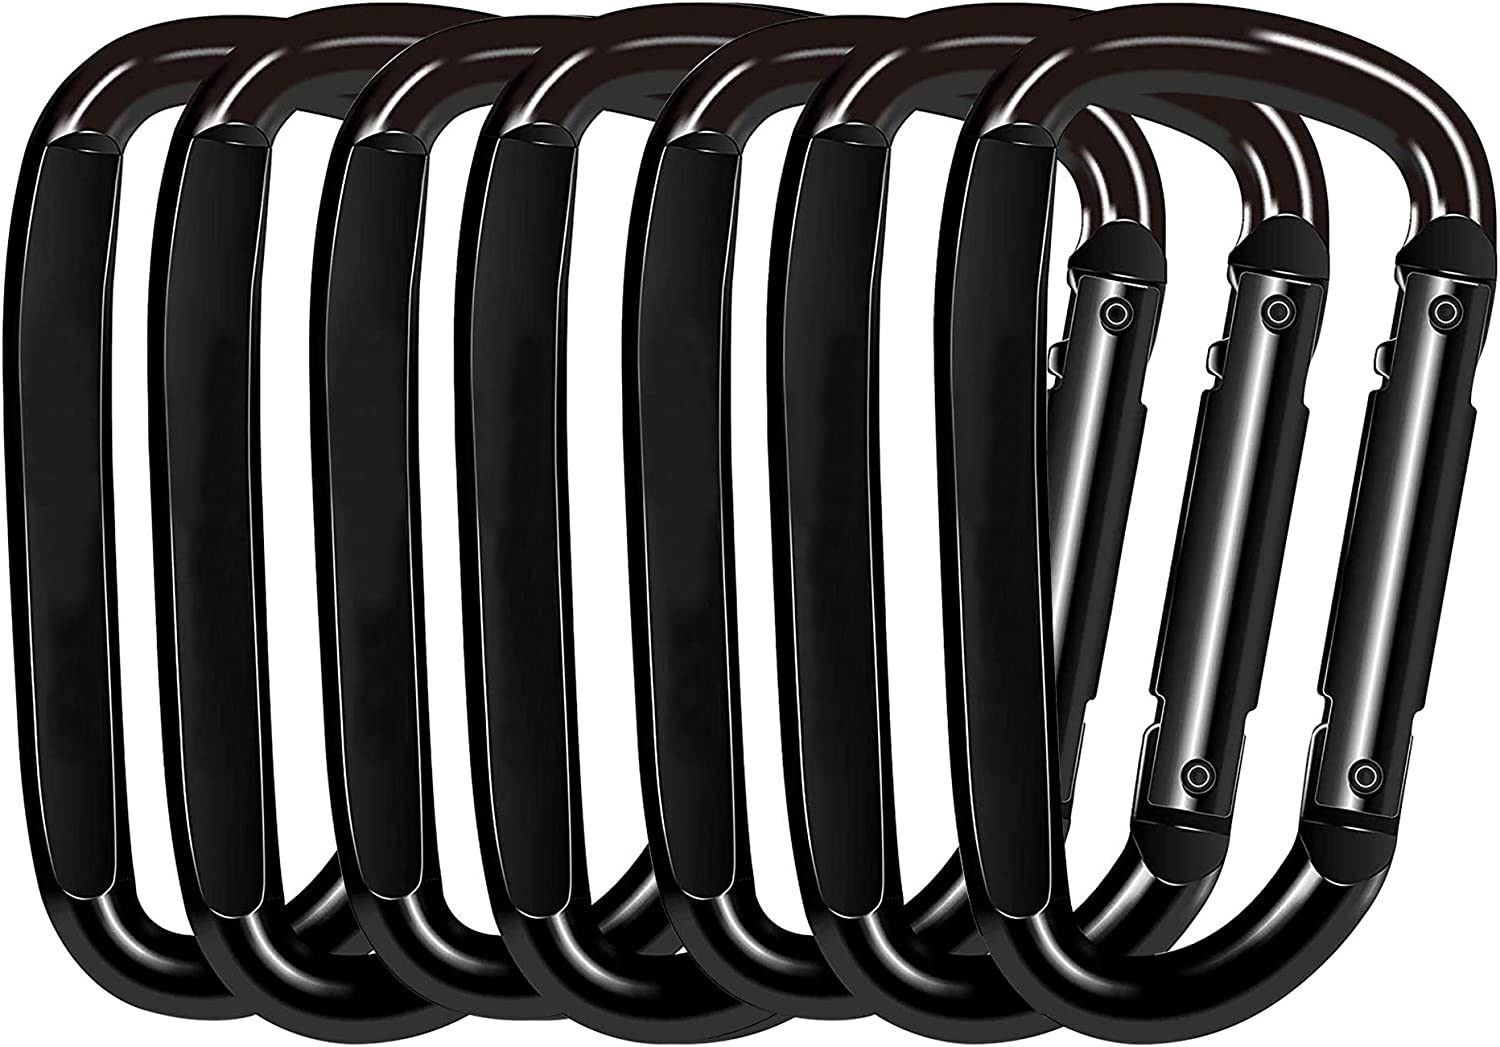 3 Inch D Shape Improved Durable Spring-Loaded Gate Iron Carabiners Fishing or as a Key Organizer Keychain Clip GLE2016 Carabiner Clip Hiking Multipurpose for Camping